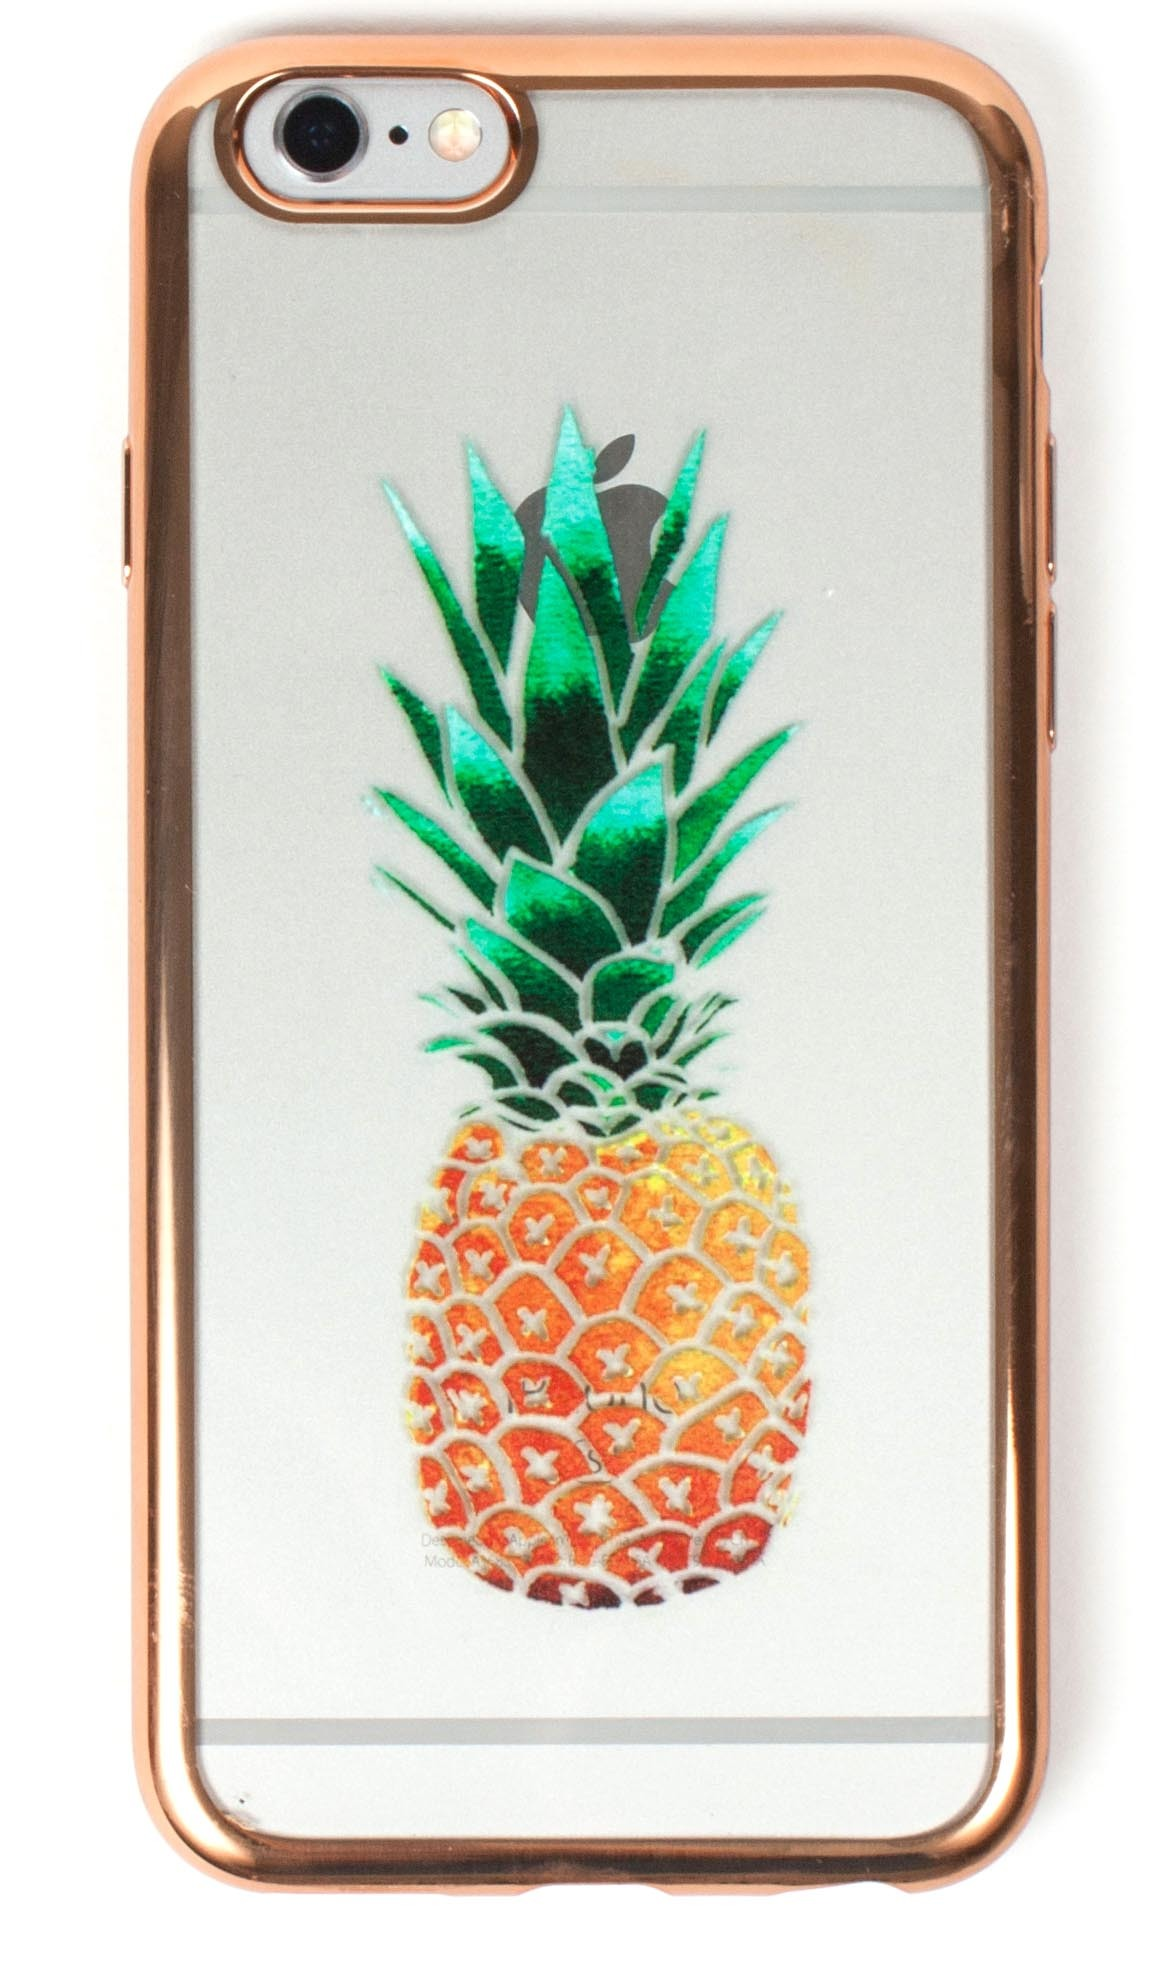 the best attitude c4519 91ef9 IPhone 5/5s Case, YogaCase MetalEdge Silicone Back Protective Cover  (Pineapple Rose Gold) - YogaCase